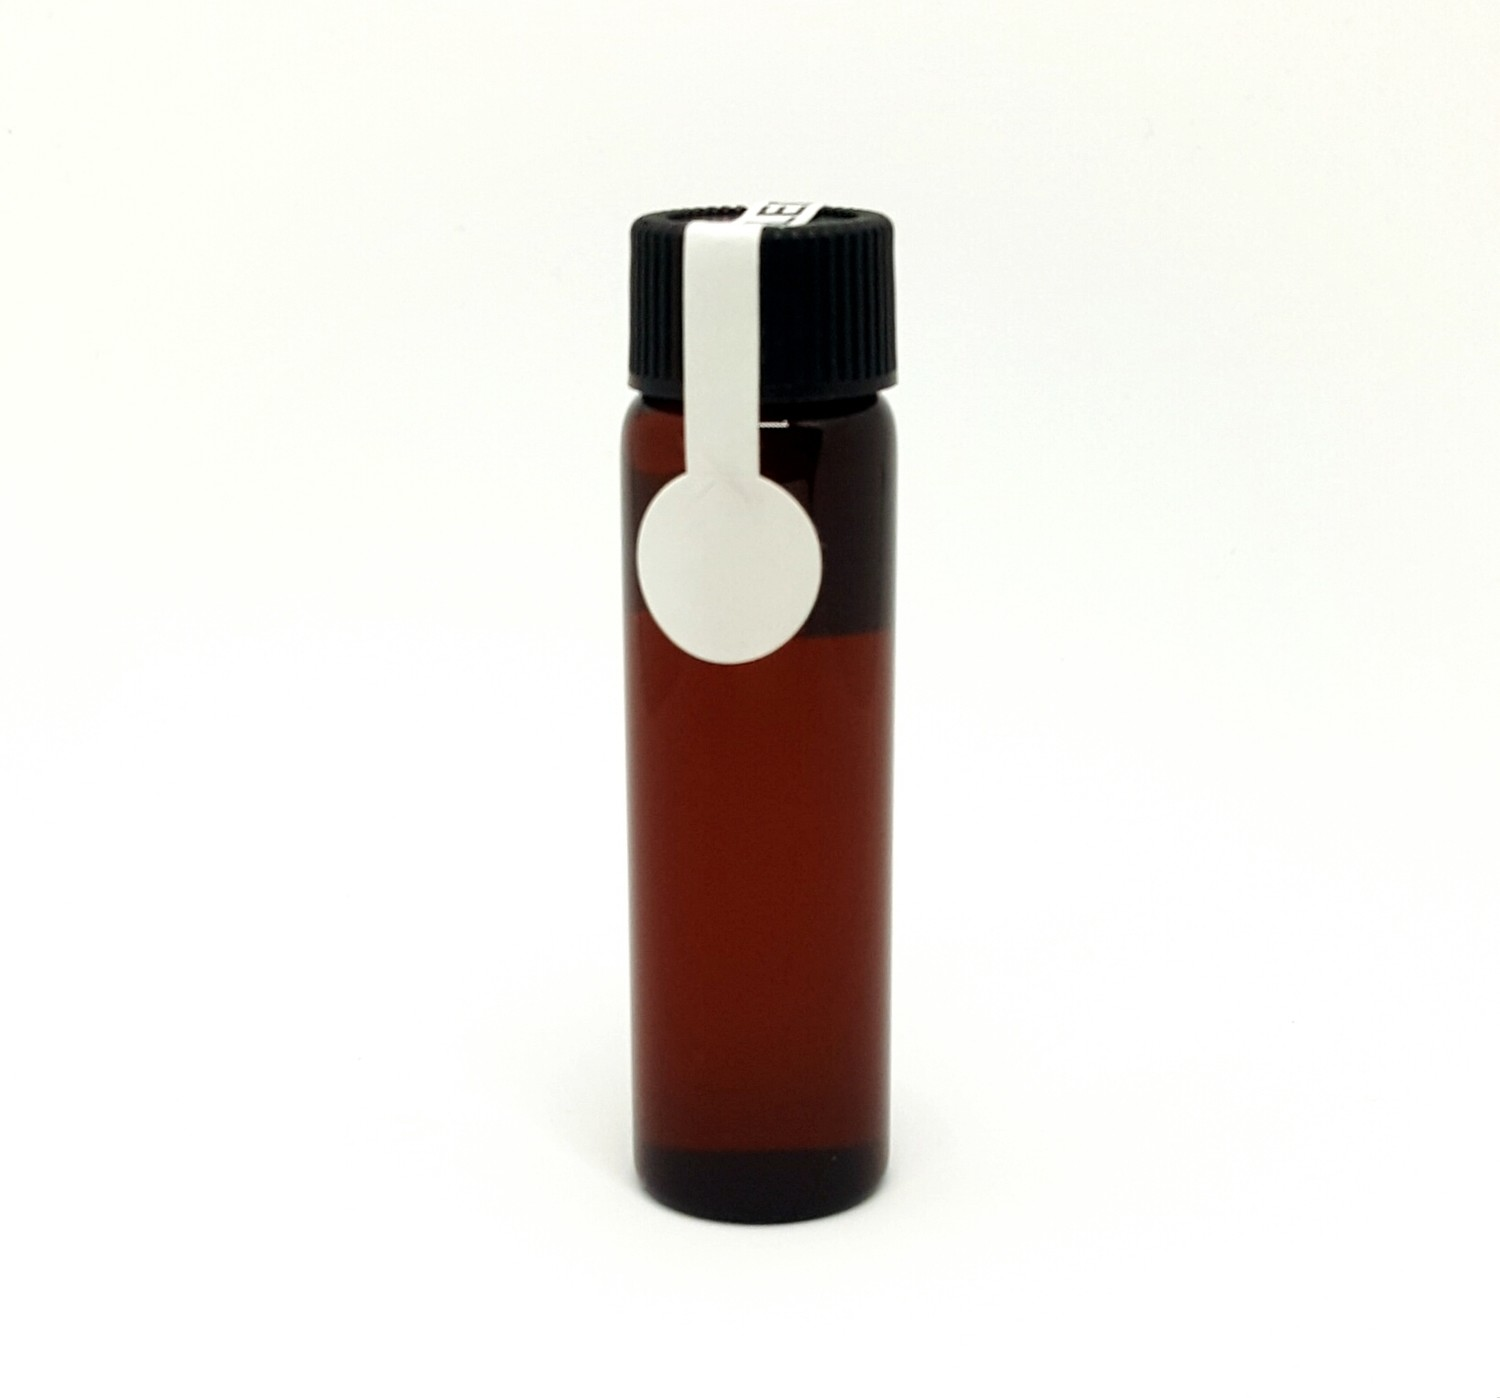 Vial Extract Oil 12 mL